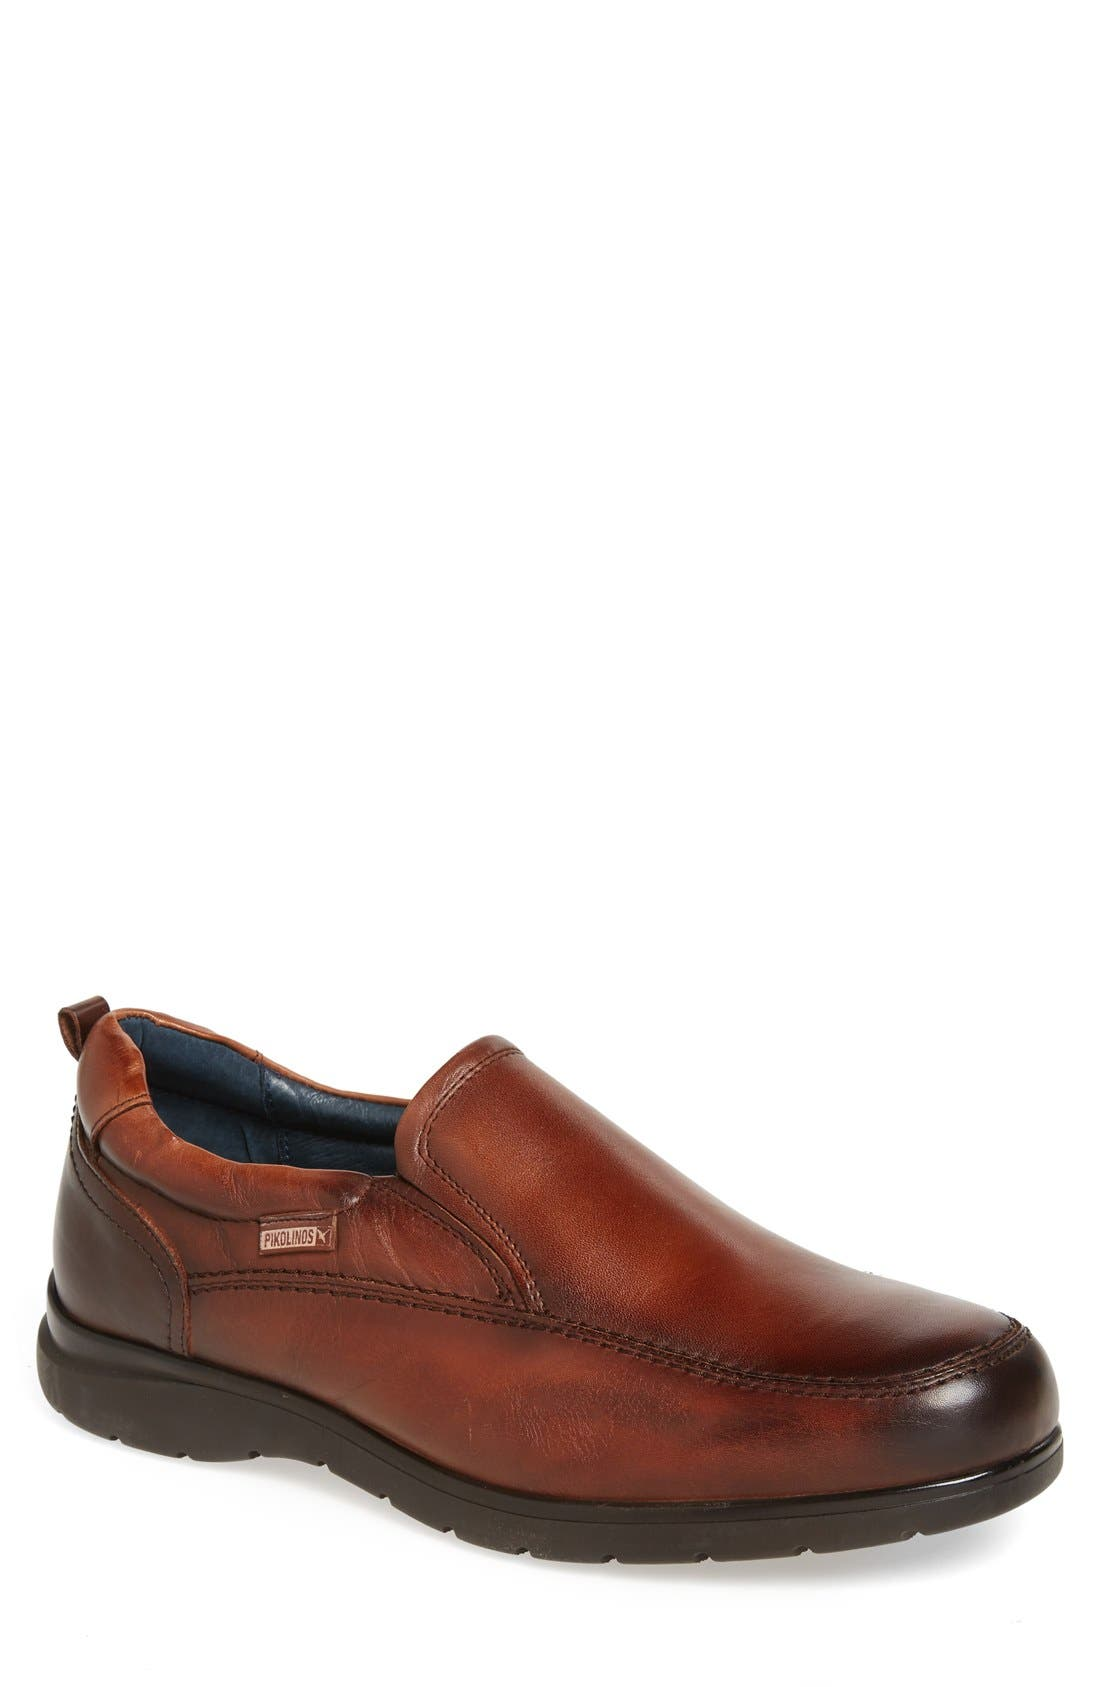 Alternate Image 1 Selected - PIKOLINOS 'San Lorenzo' Slip-On (Men)